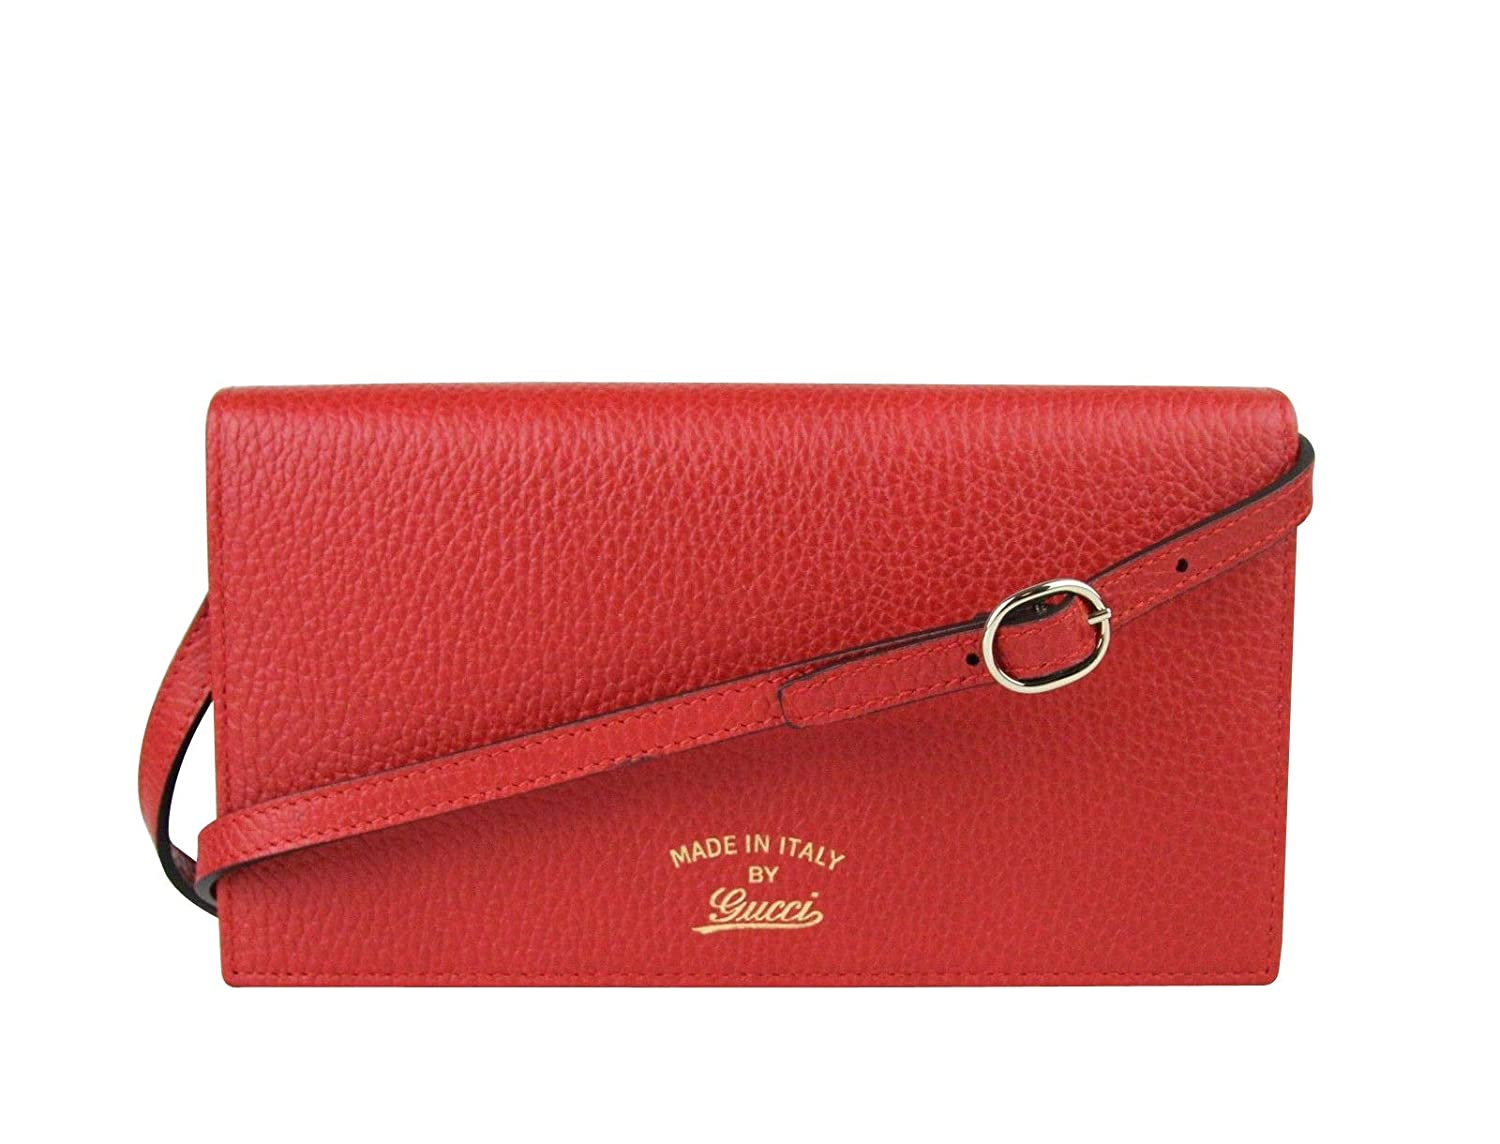 91bdad5706f Amazon.com: Gucci Women's Swing Red Leather Crossbody Clutch Wallet 368231  6523: Shoes